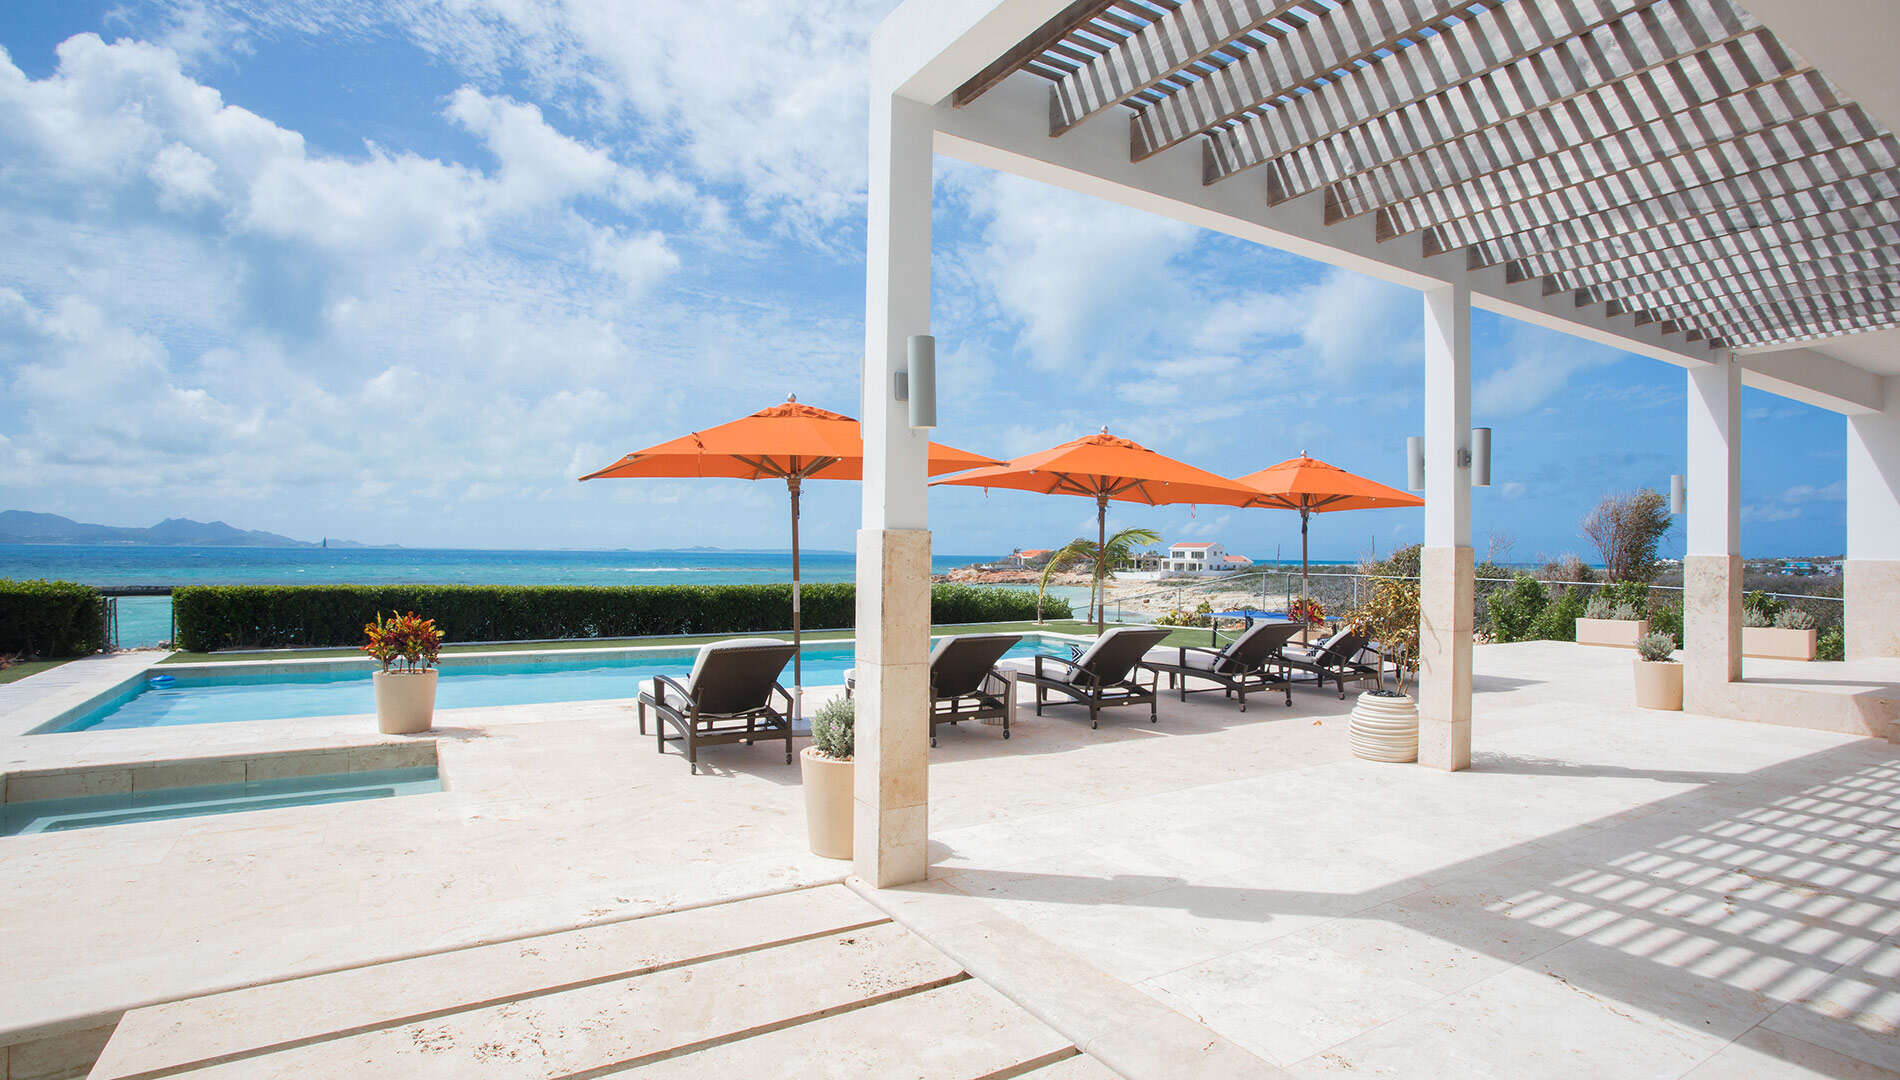 Luxury villa rentals caribbean - Anguilla - Blowing point - Champagne Shores - Image 1/17